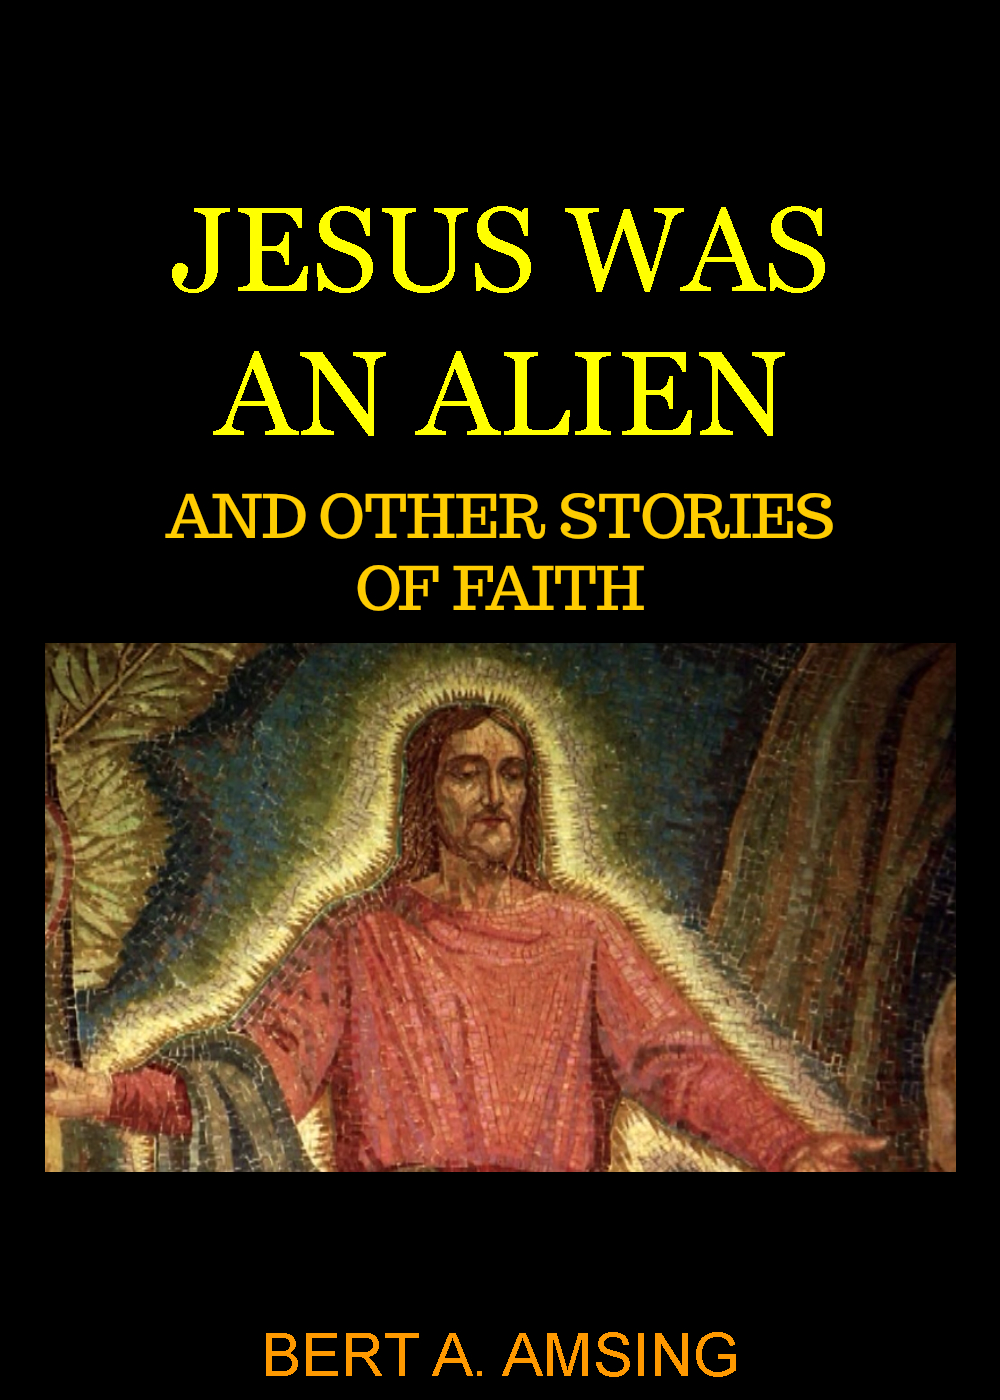 [Image: jesus_was_an_alien_does_this_look_right_cover.jpg]